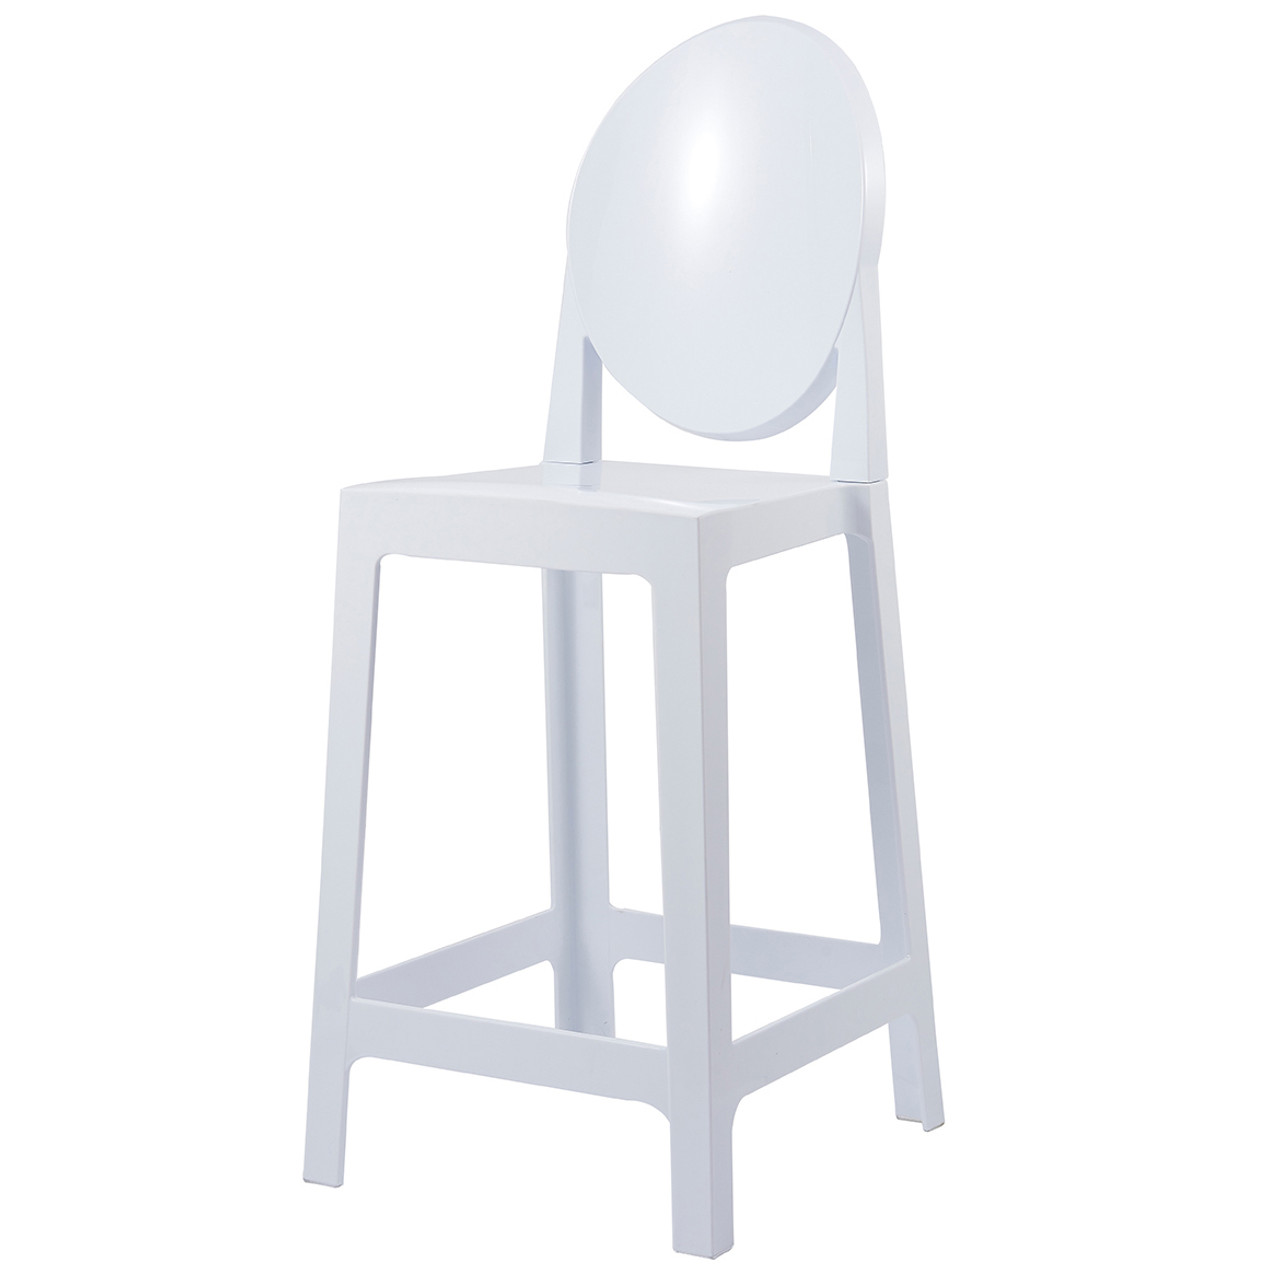 Victoria Style Ghost Bar Stool Counter Stool Clear Stool 25 Seat Height 2xhome Modern And Contemporary Furniture